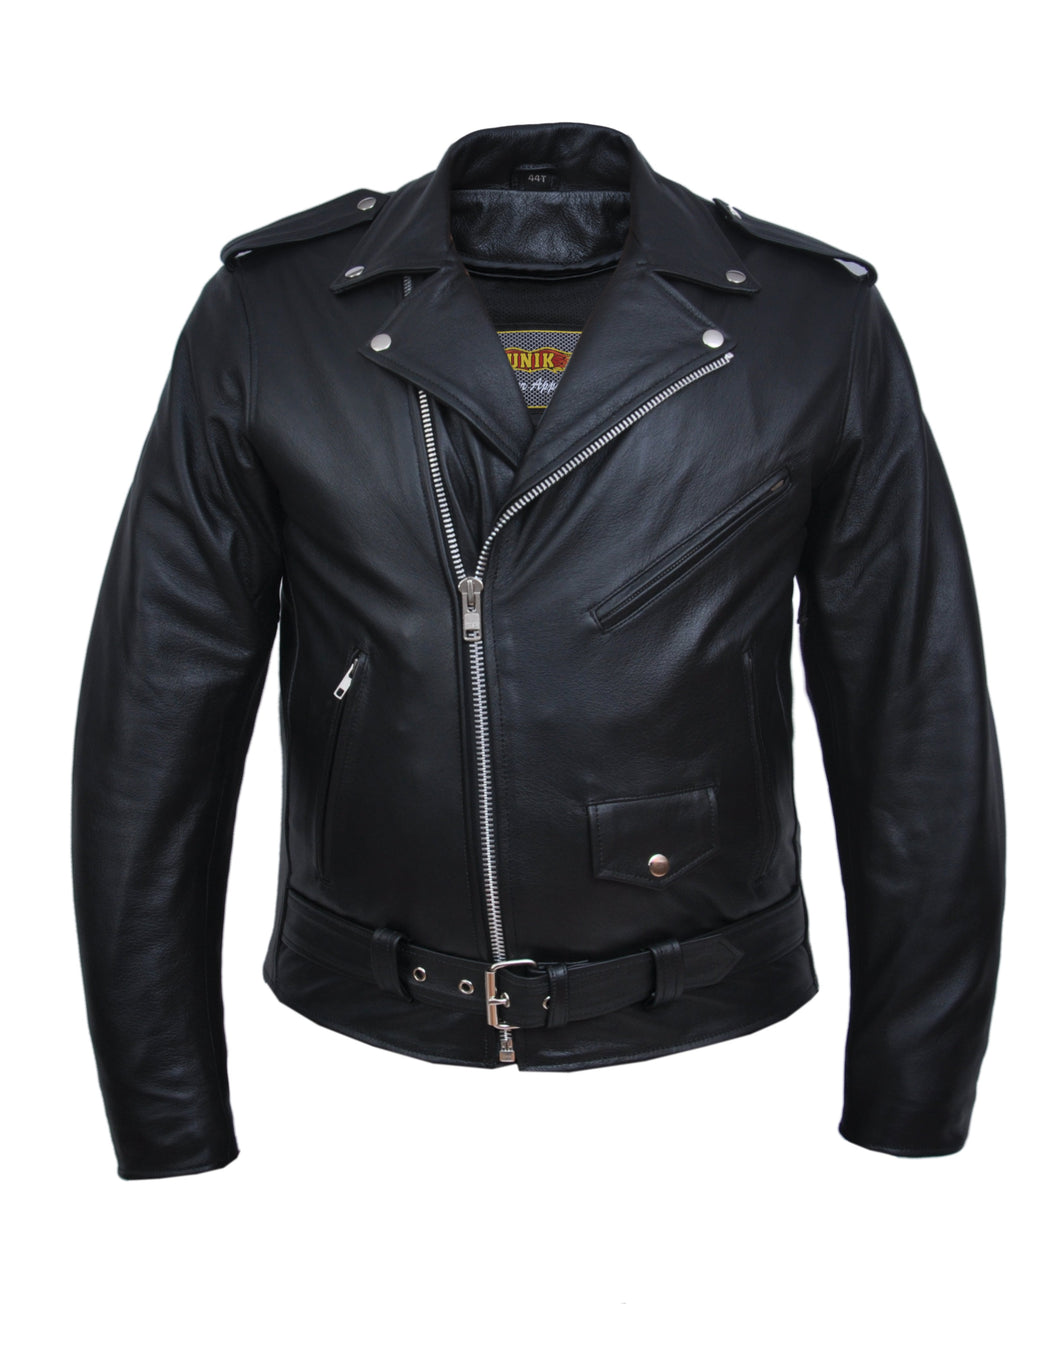 UNIK TALL Men's Premium Leather Motorcycle Jacket